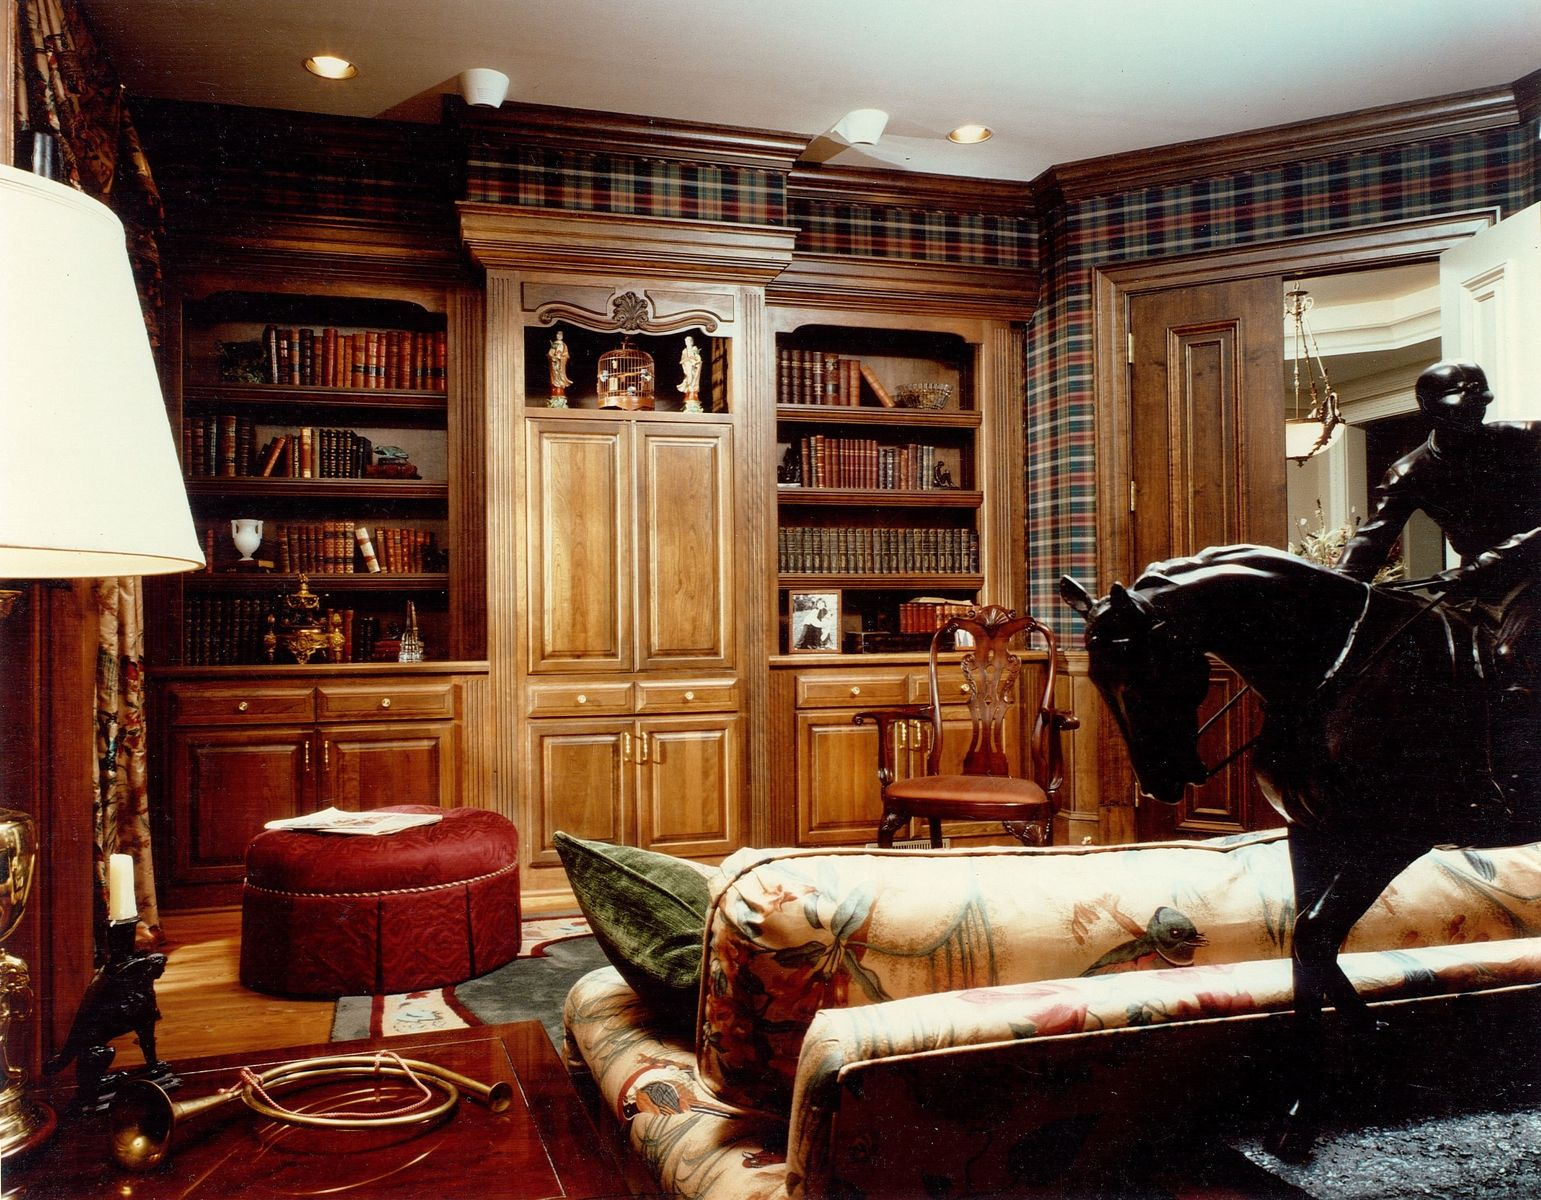 equestrian wallpaper ralph lauren